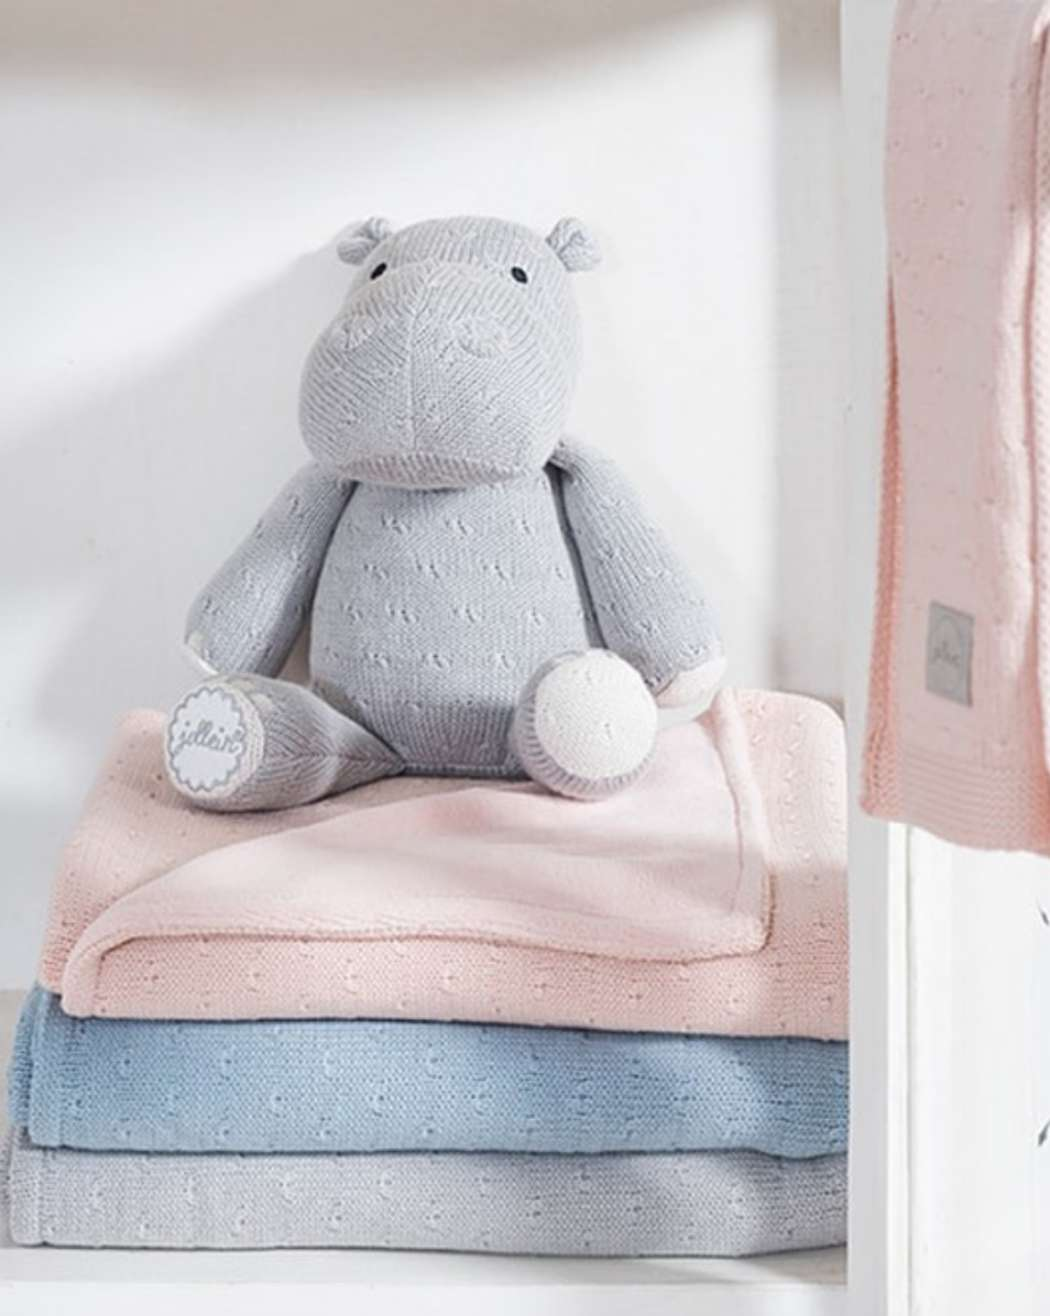 Knuffel_Soft_knit_hippo_light_grey_soft_knit_deken